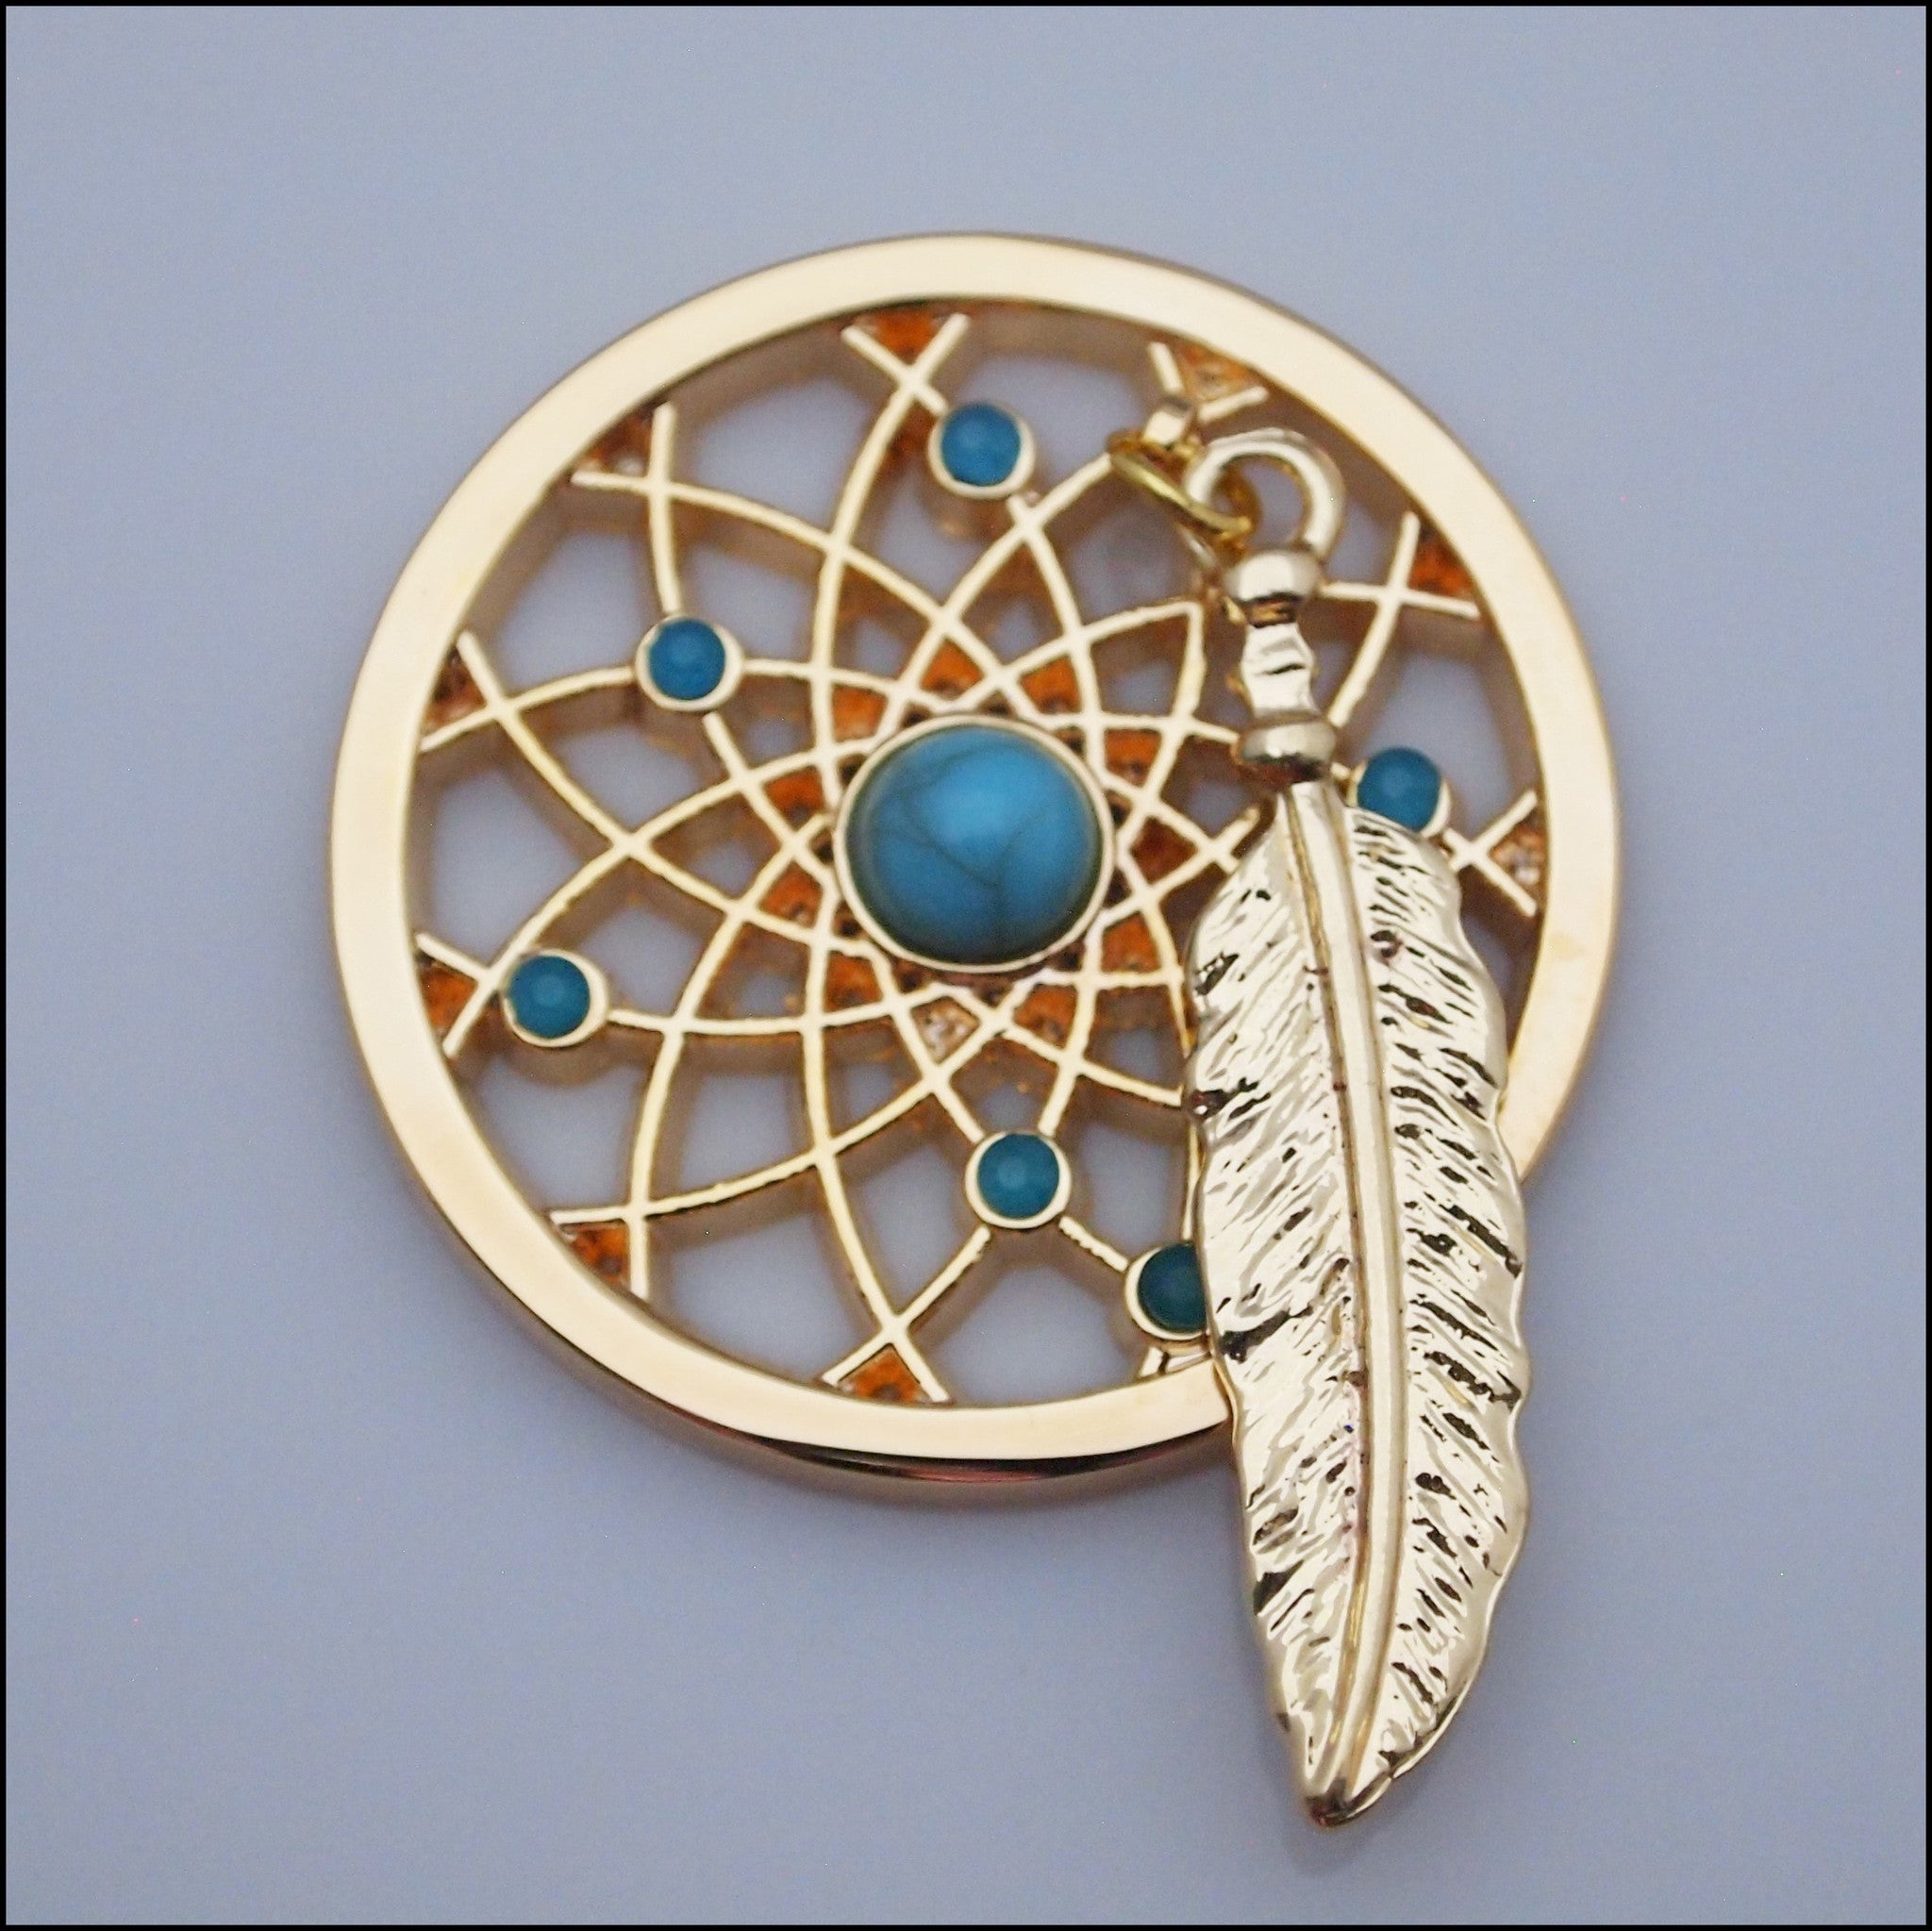 Coin for Coin Pendant - Dream Catcher Gold - Find Something Special